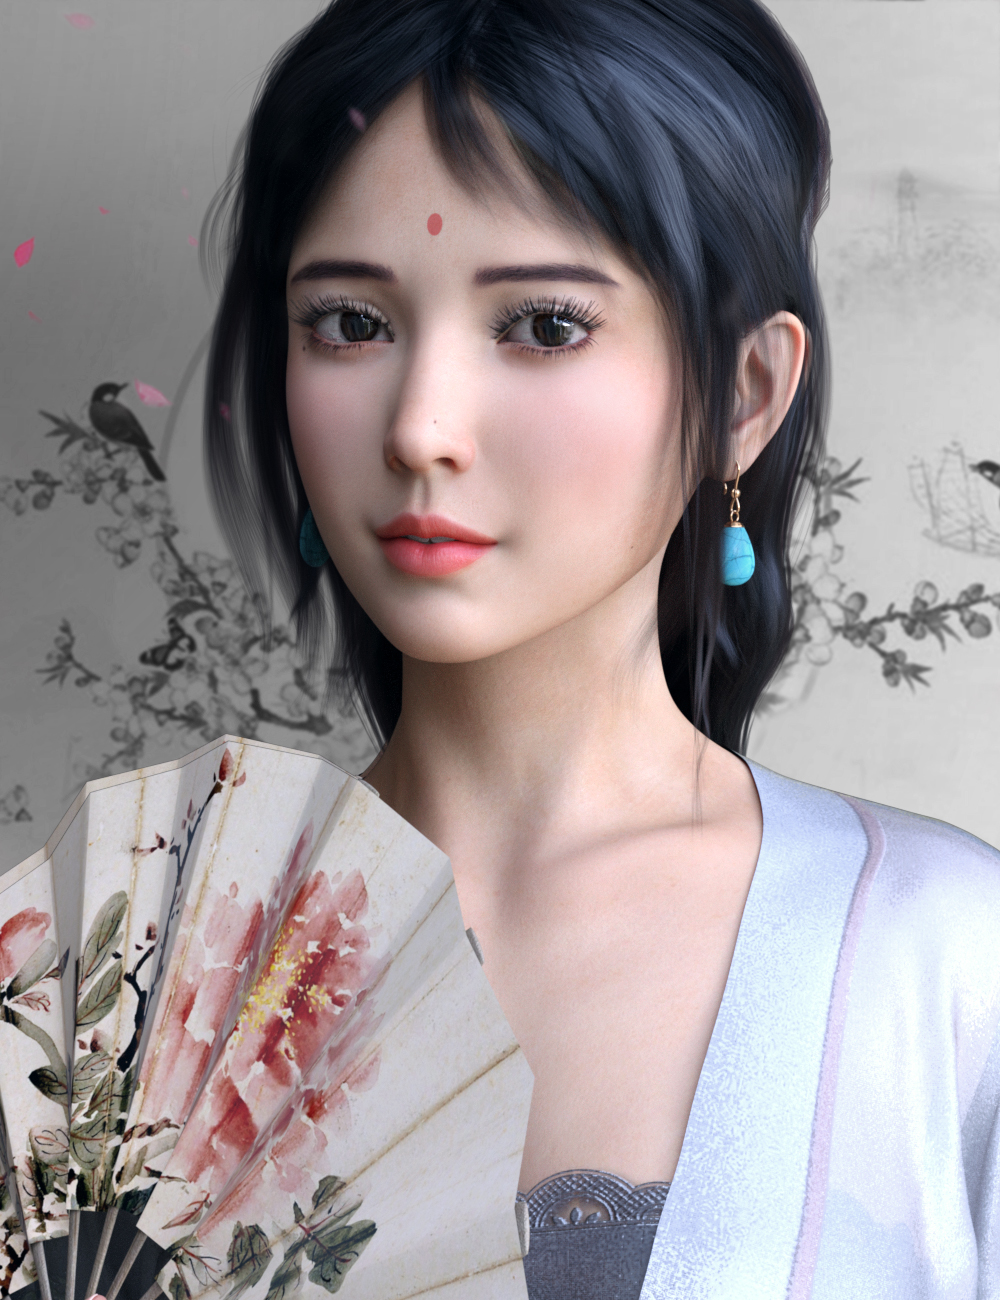 VO Xiao Mei for Genesis 8 and 8.1 Females by: VOOTW, 3D Models by Daz 3D